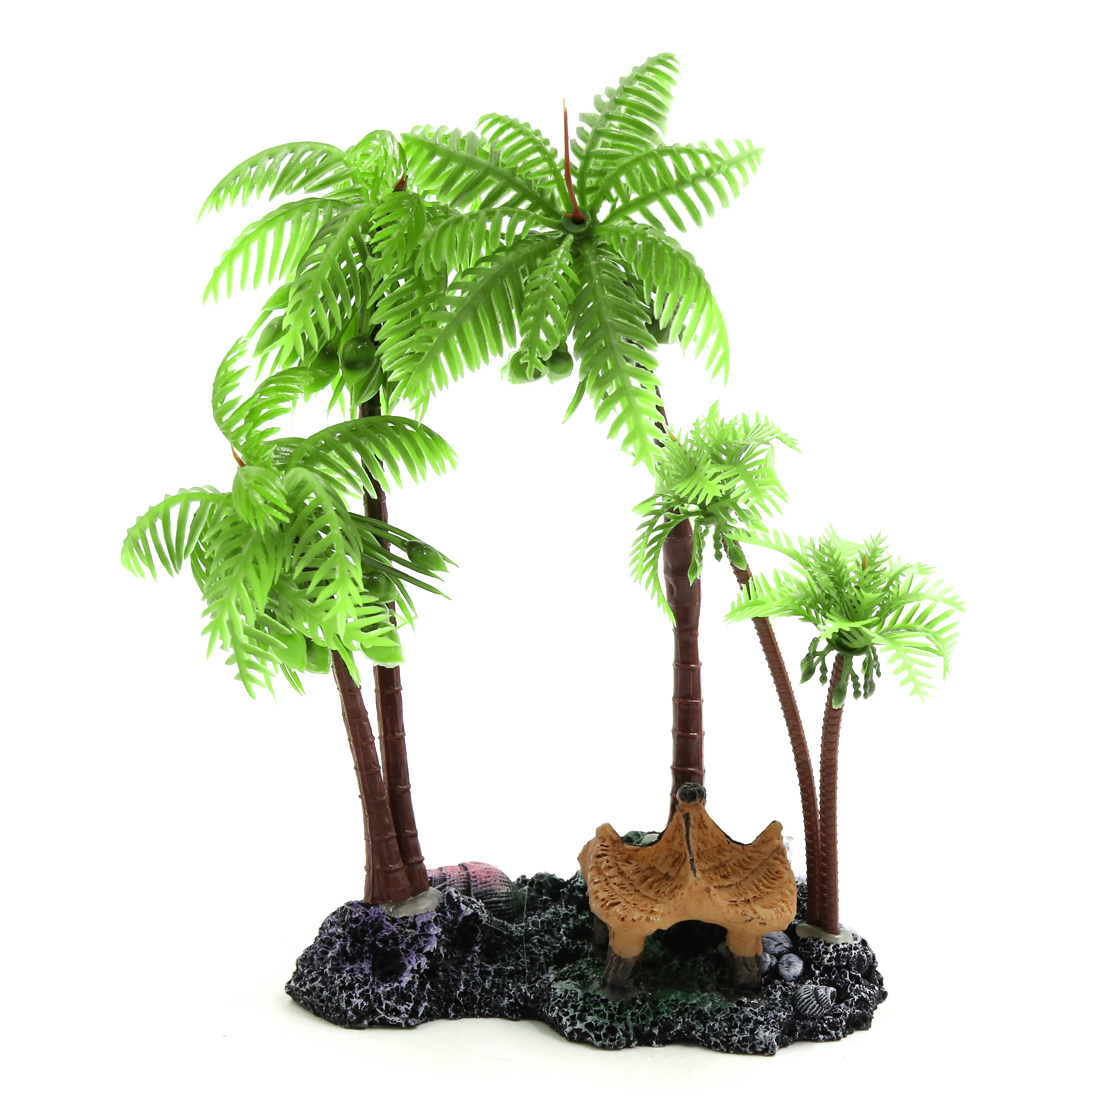 Green Plastic Coconut Tree Aquarium Aquascape Plant Decoration w/ Resin Base - image 4 of 4